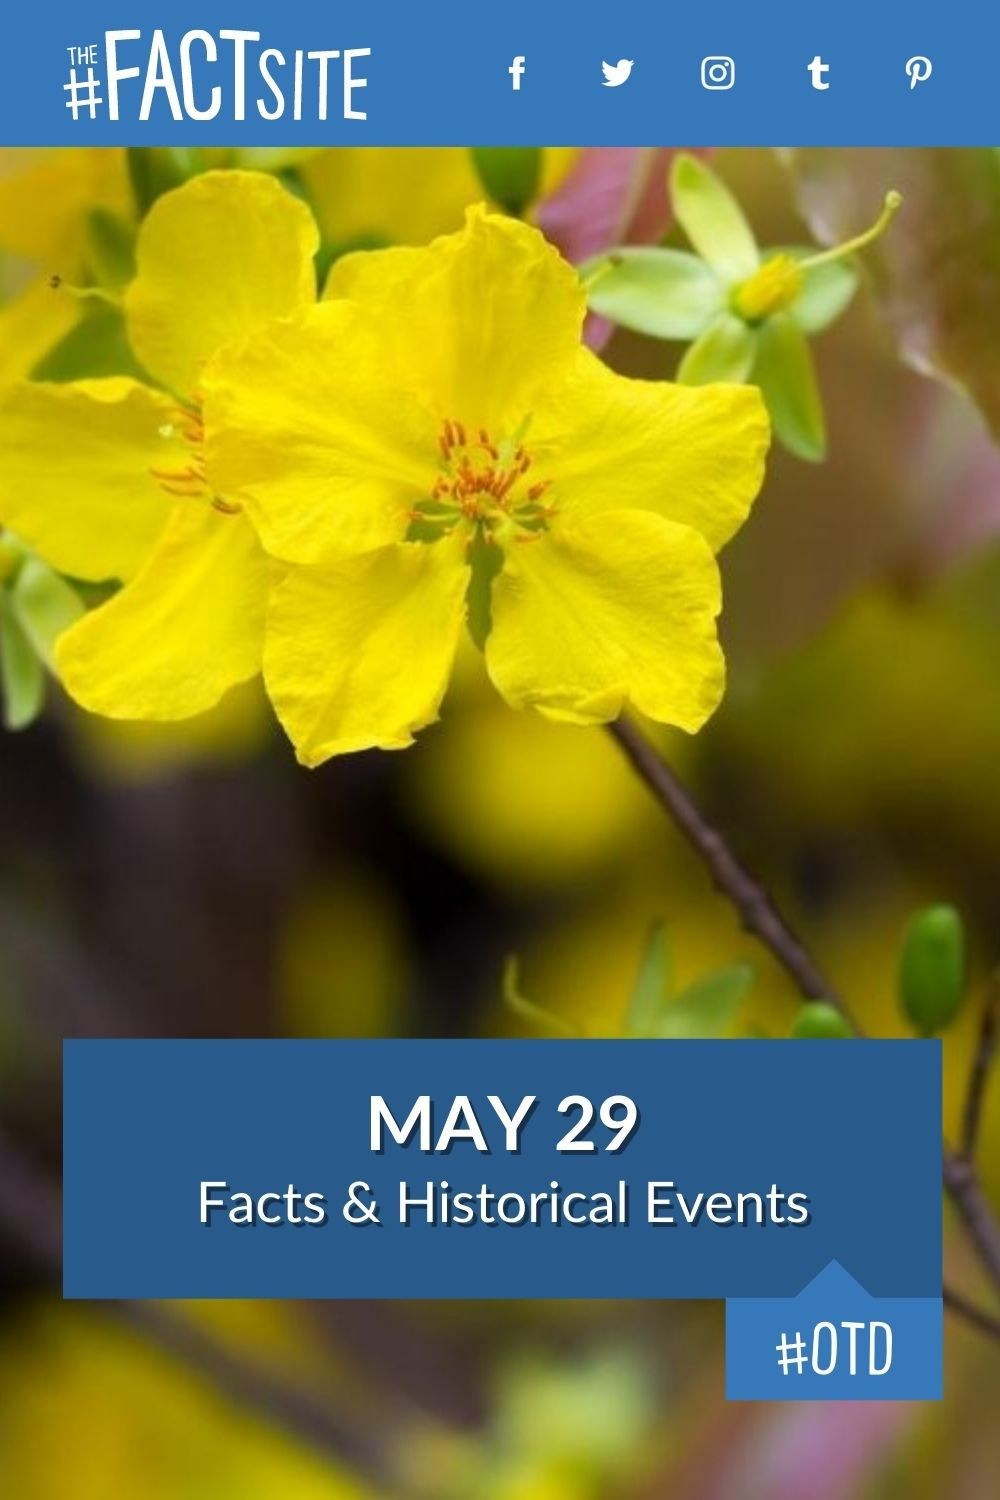 Facts & Historic Events That Happened on May 29